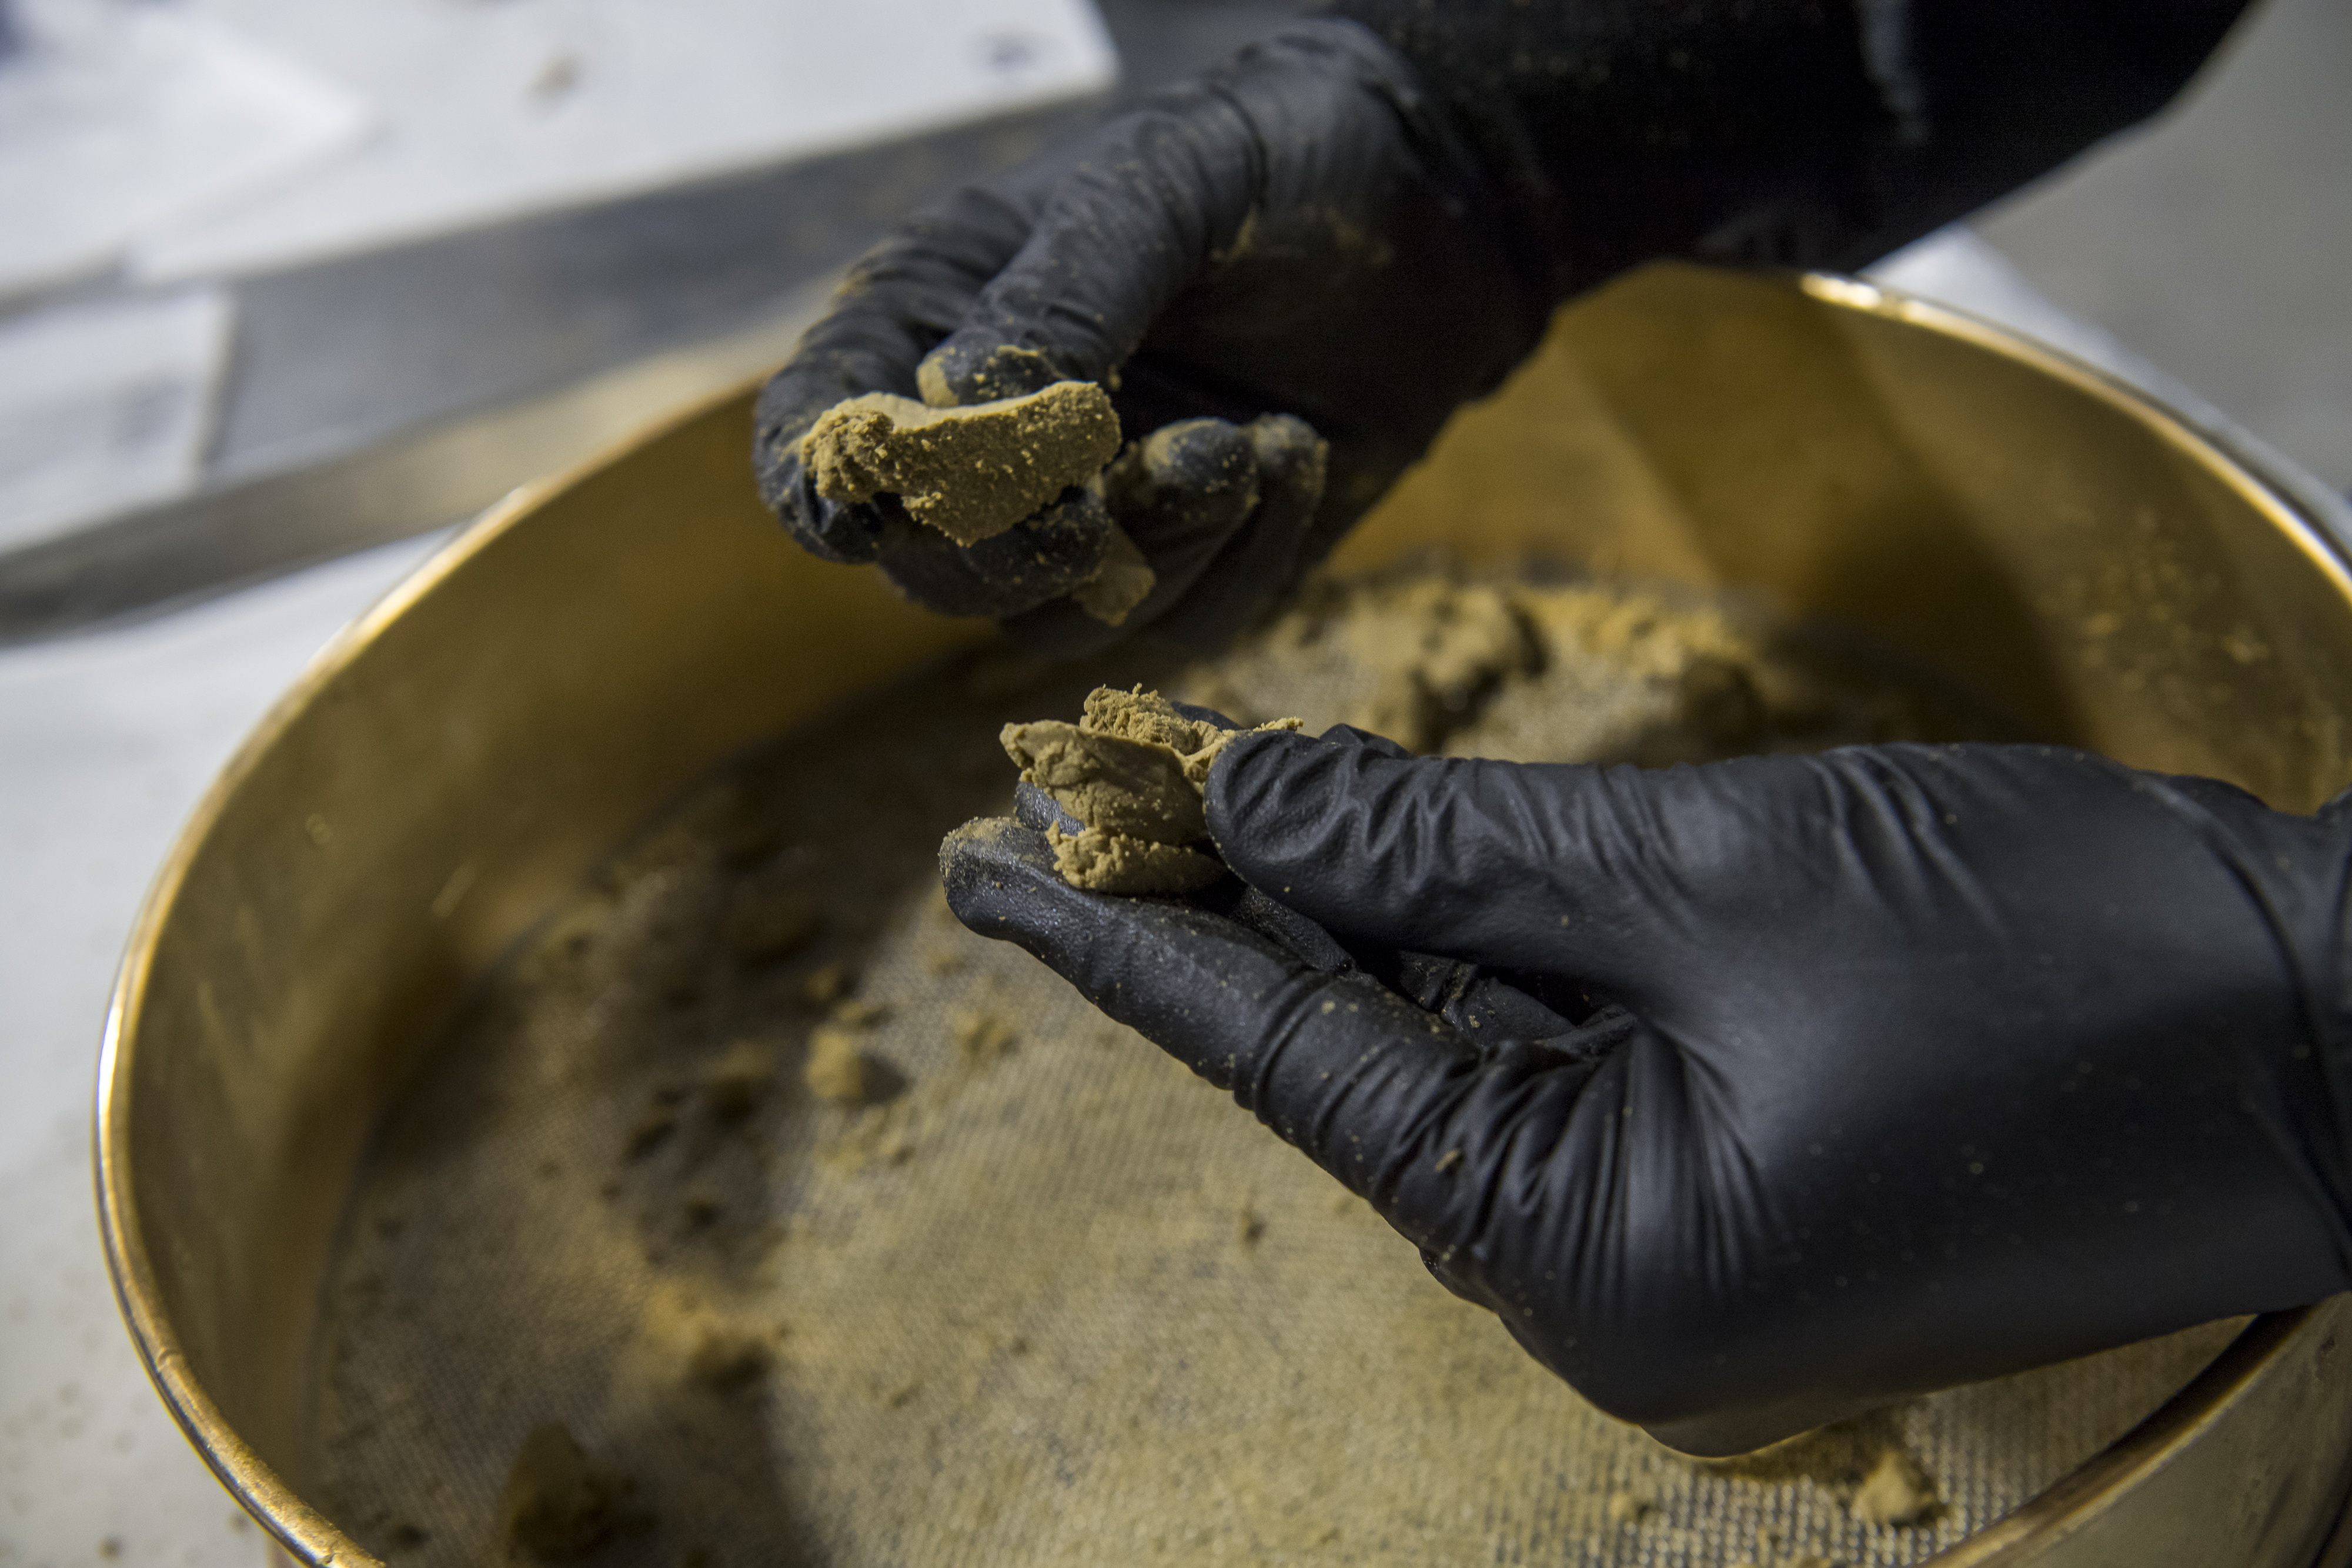 Hands in black vinyl gloves crumble hash over a stainless steel sifter.